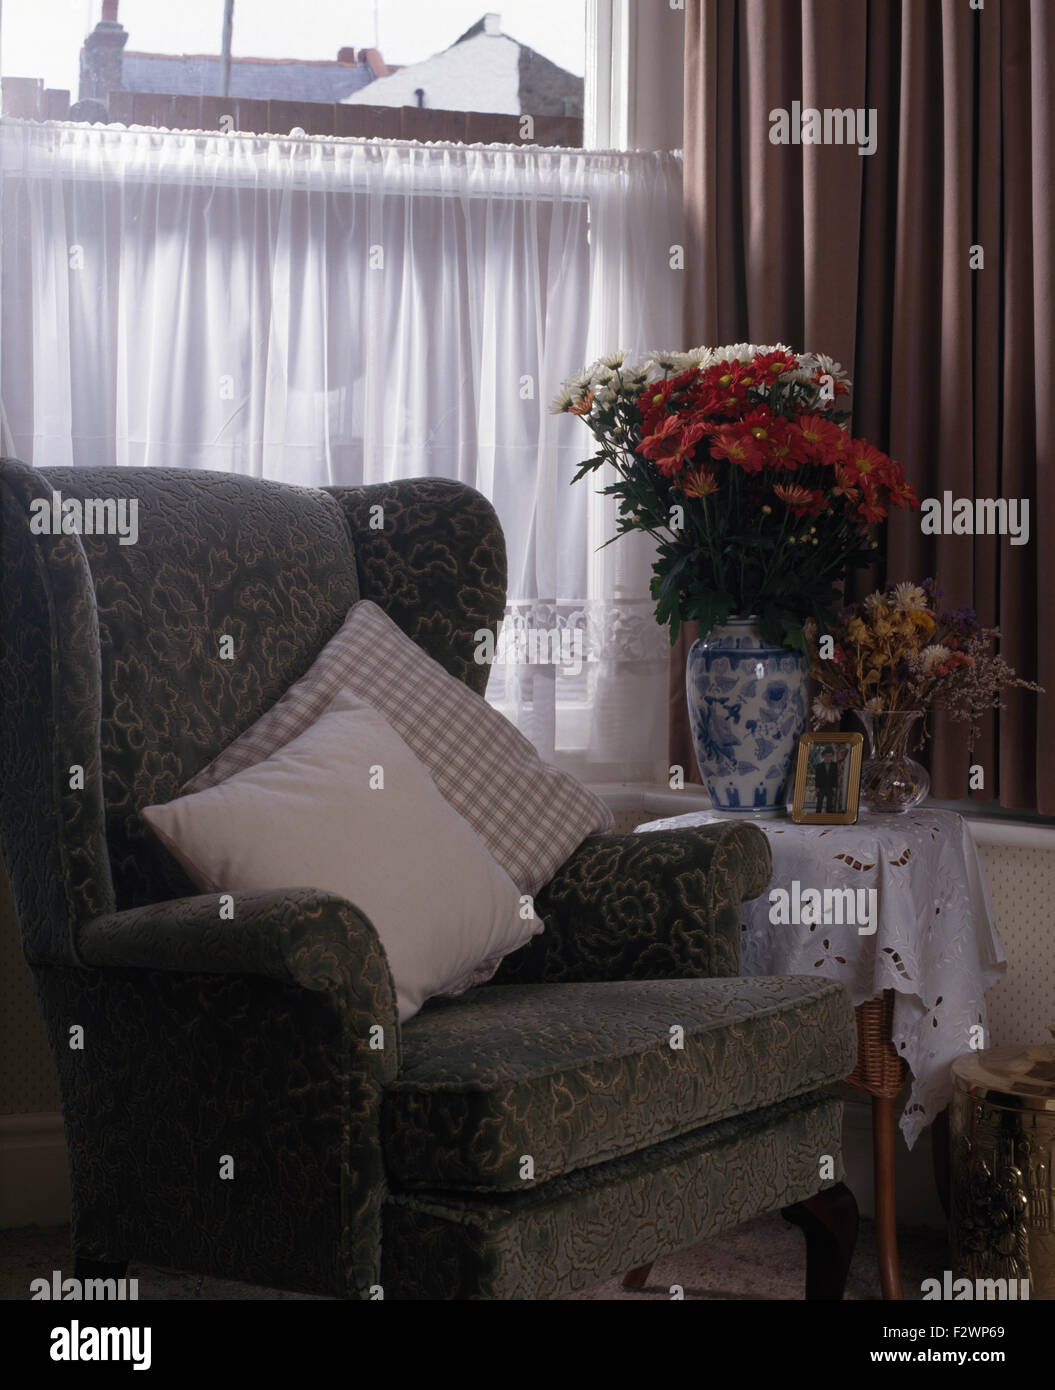 Upholstered Grey Chair In Front Of Window With A Wshite Net Cafe Curtain    Stock Image